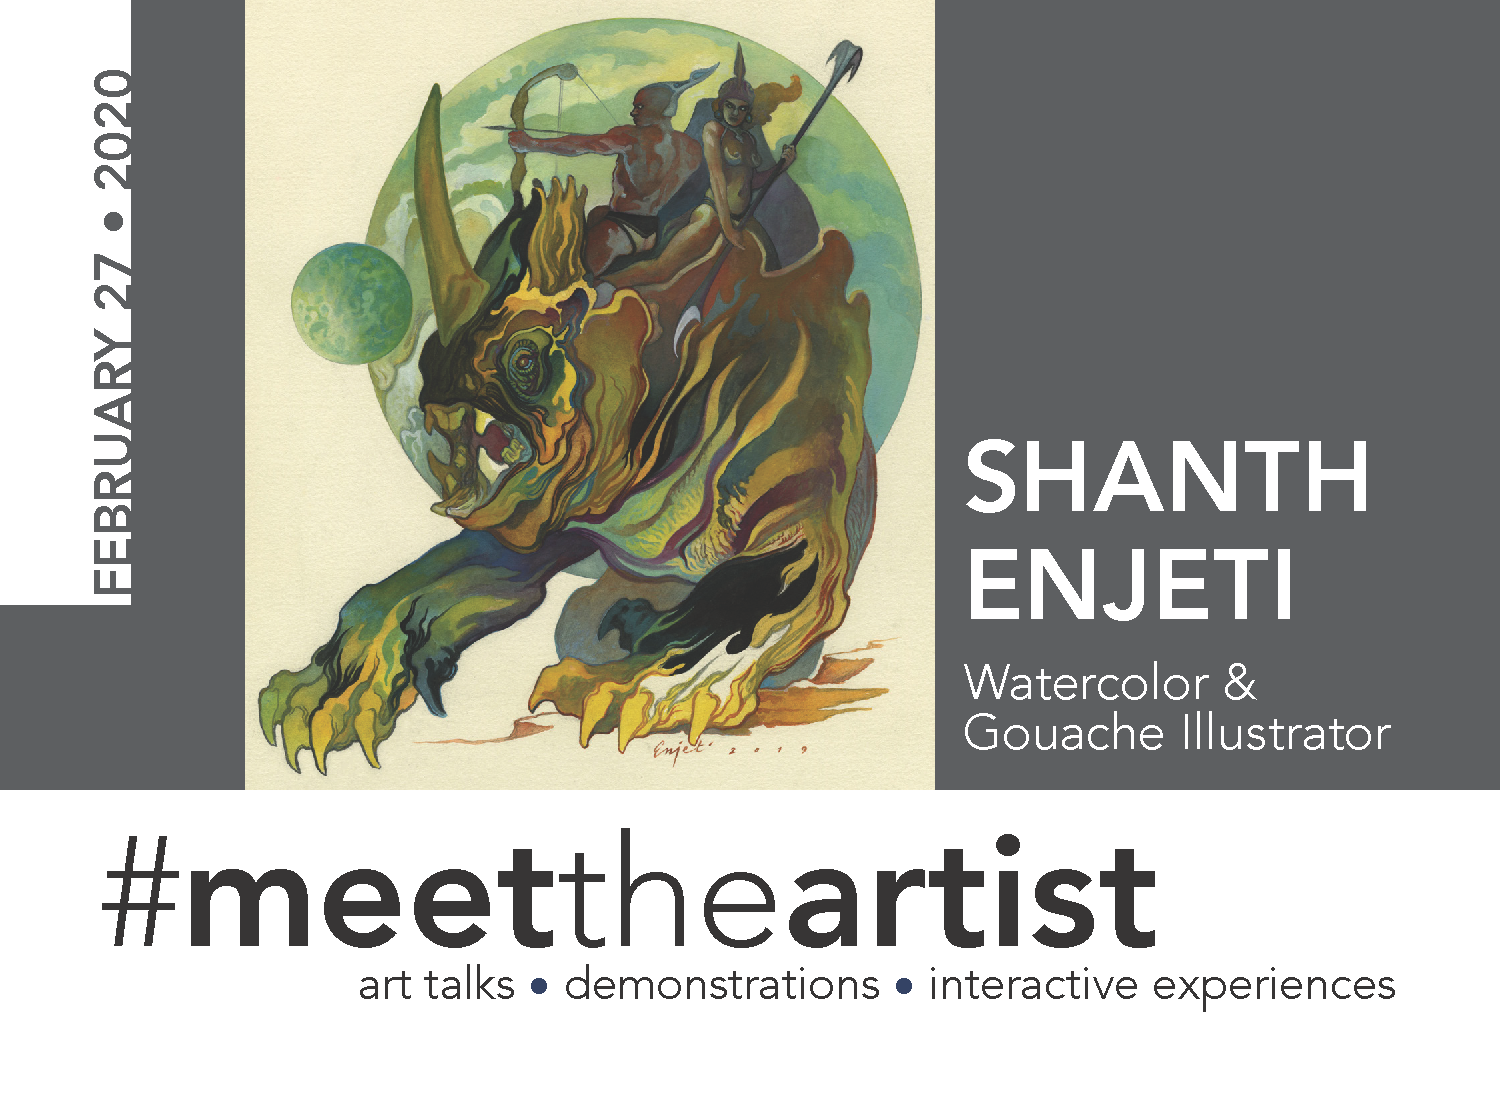 #meettheartist Shanth Enjeti